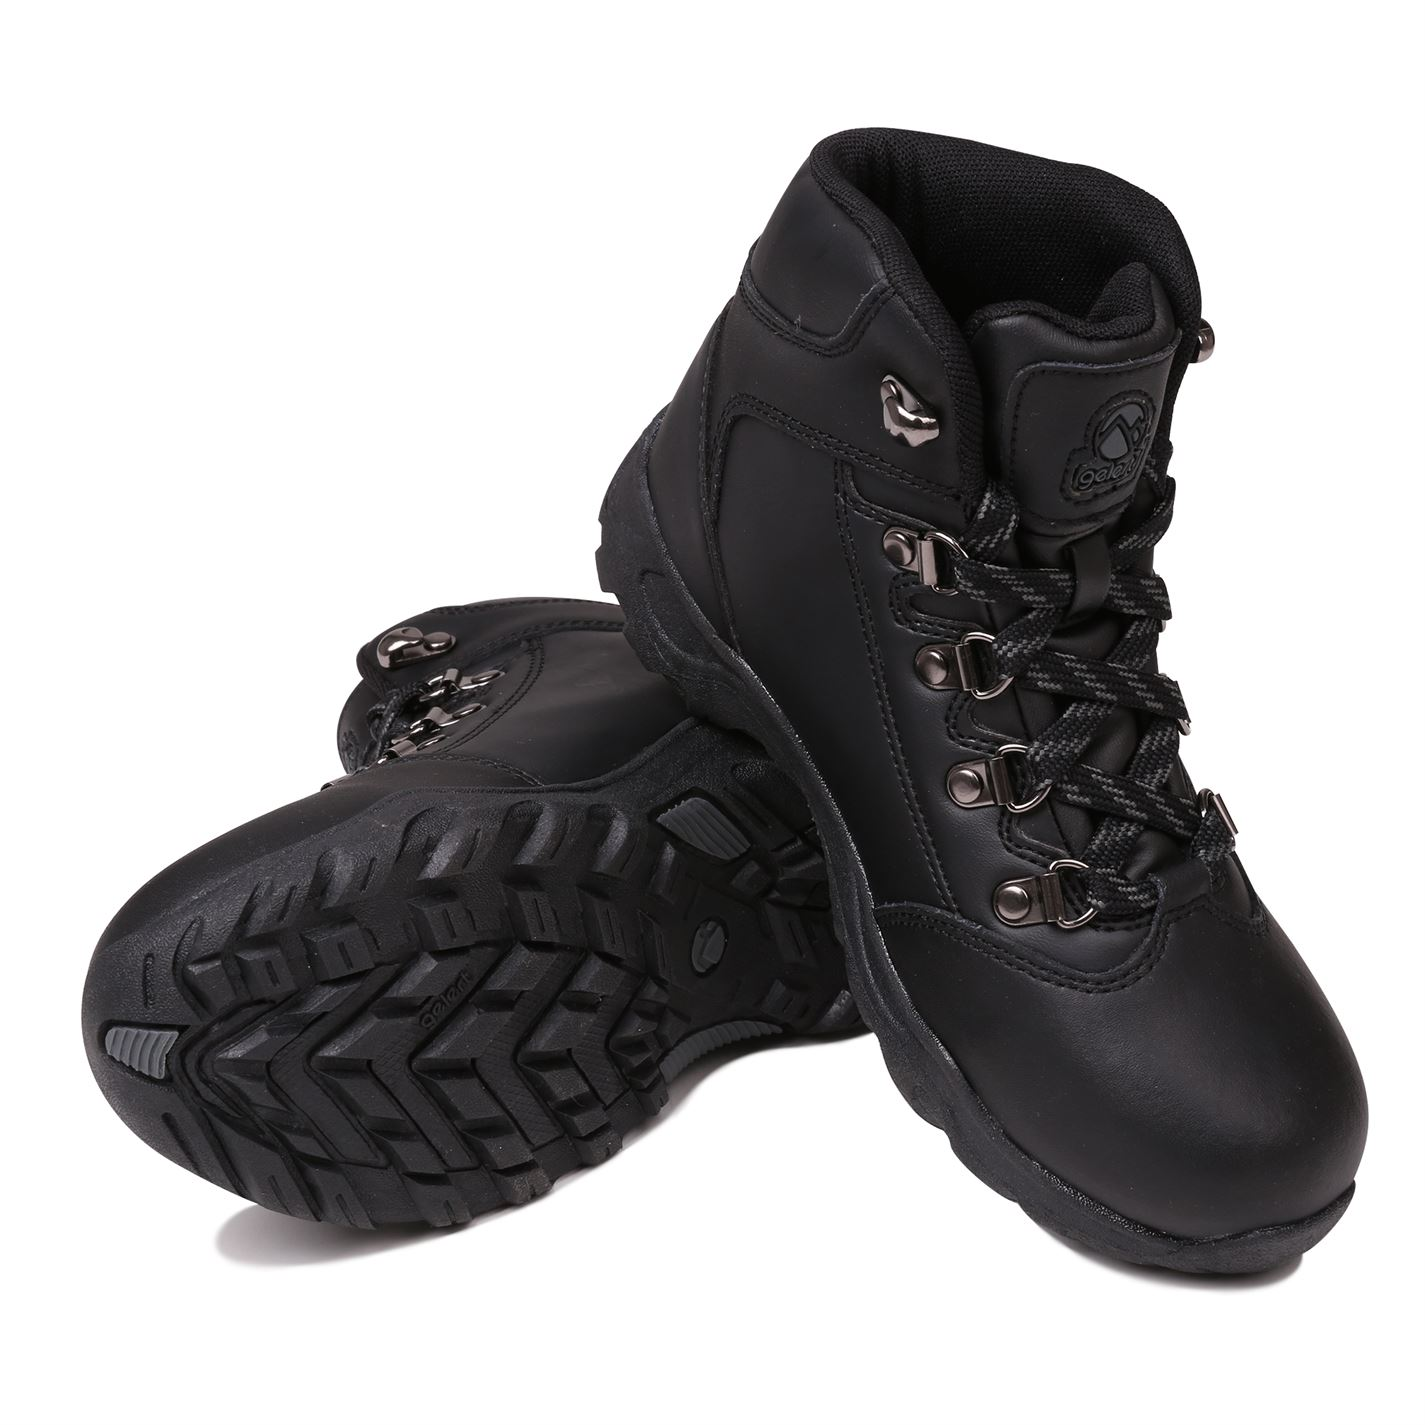 Gelert Kids Leather Walking Boots Metal D Rings Full Lace Up Outdoor Junior Boys